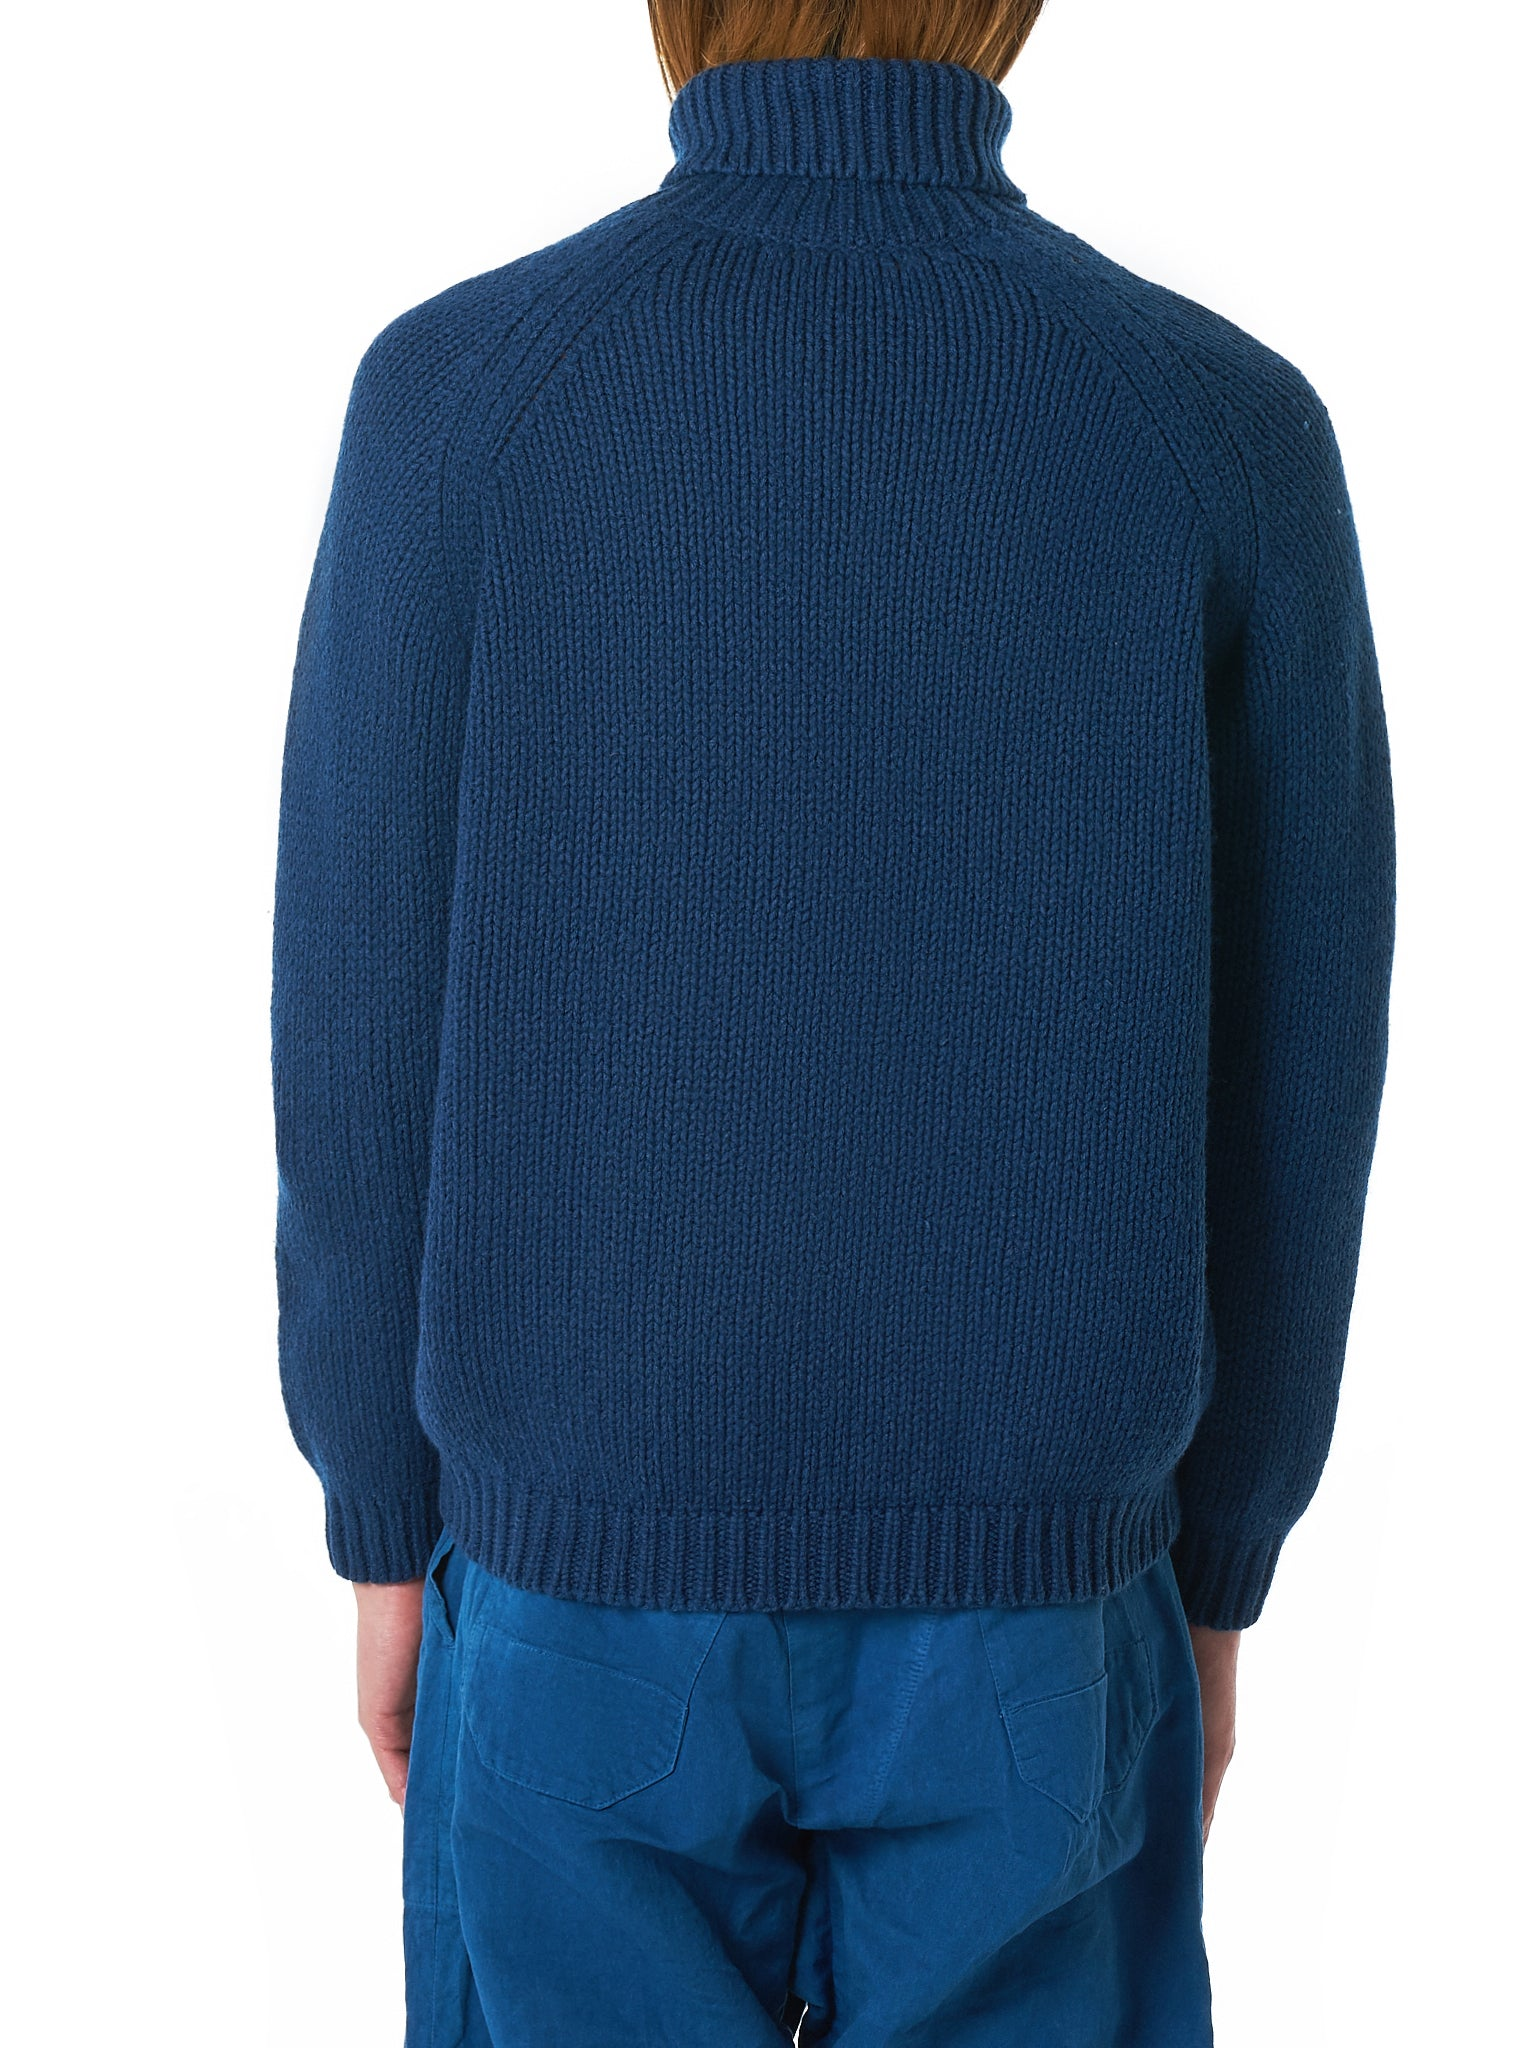 Bleu de Cocagne Turtleneck Sweater - Hlorenzo Back